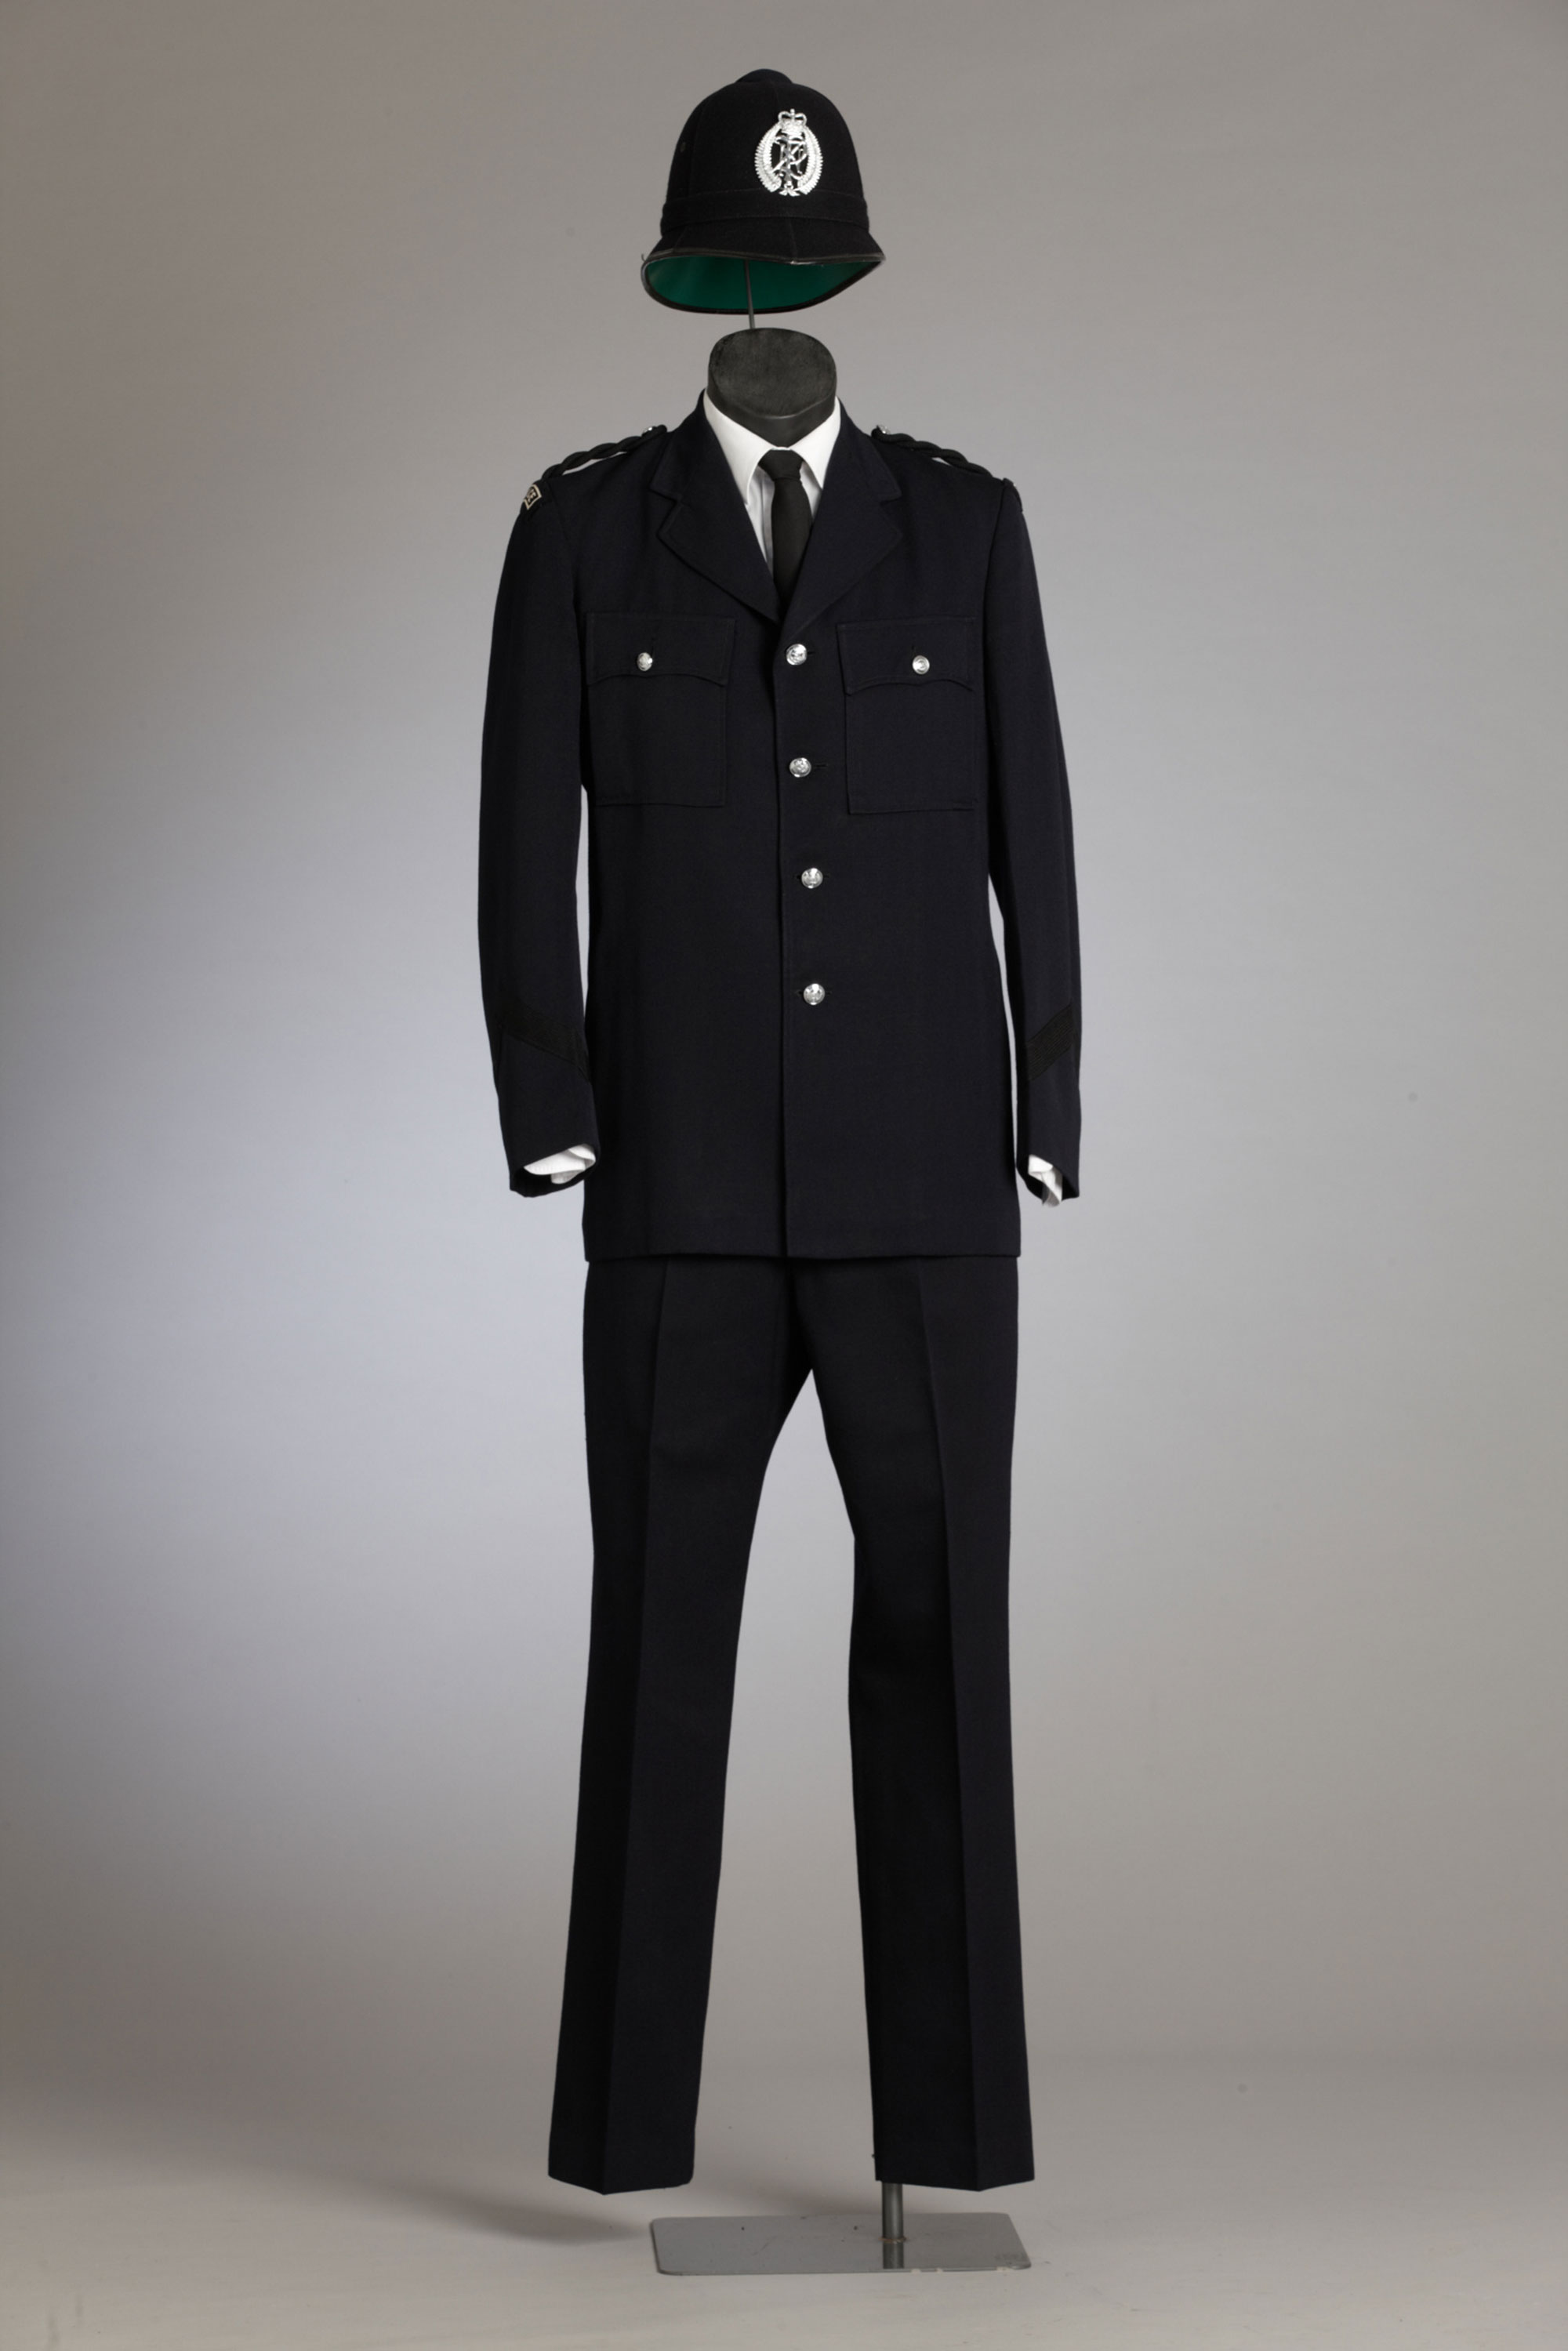 What are the different police uniforms used in different